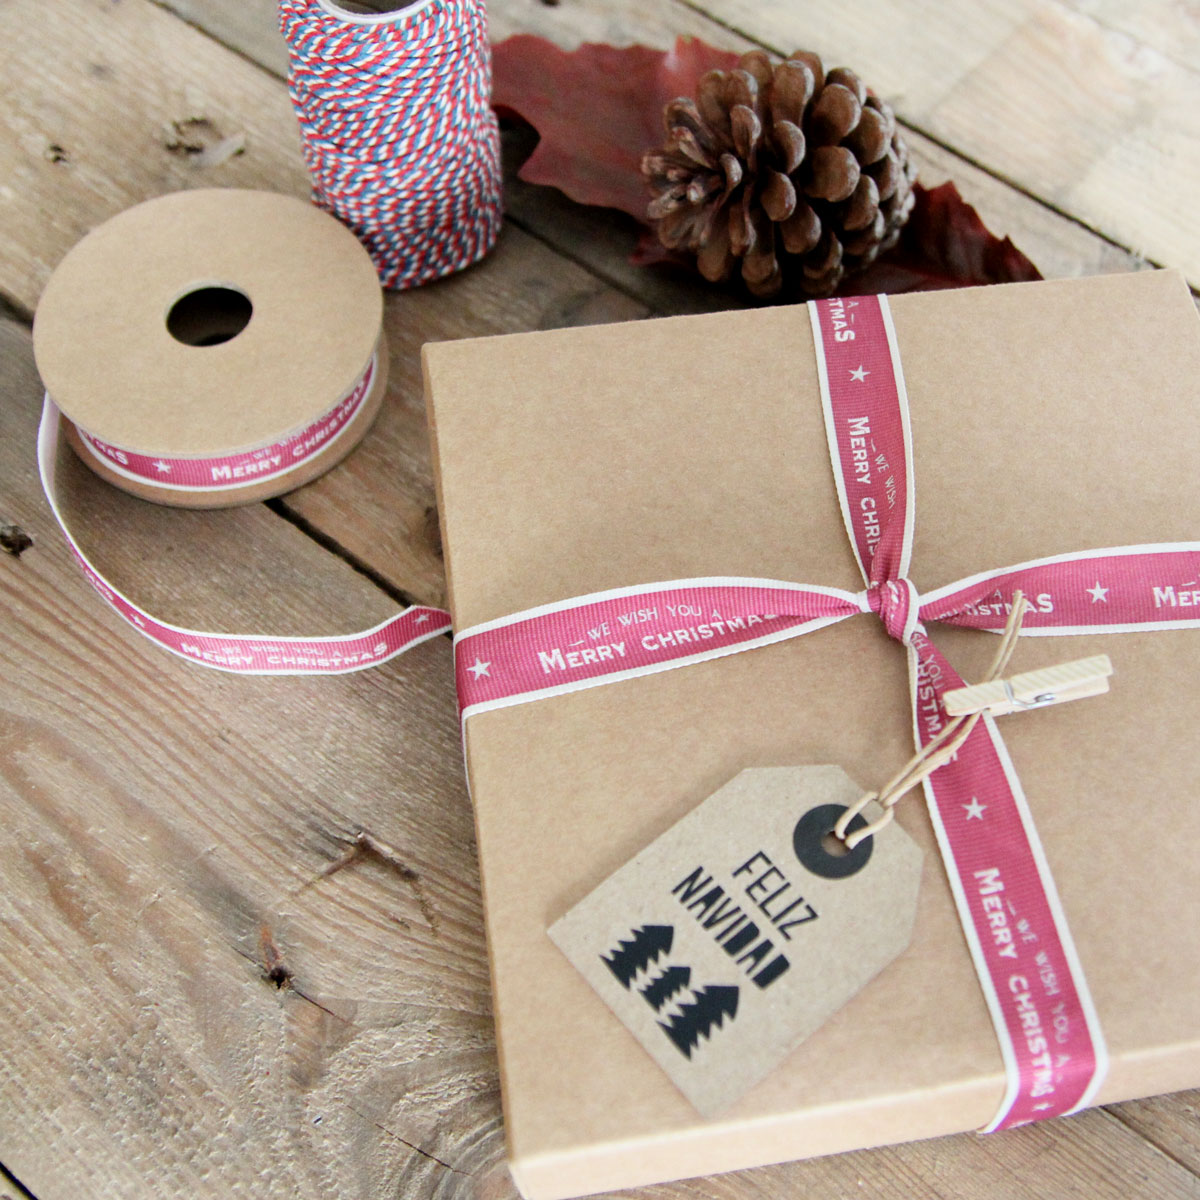 Mr_wonderful_shop_decoracion_navidad_2014_049